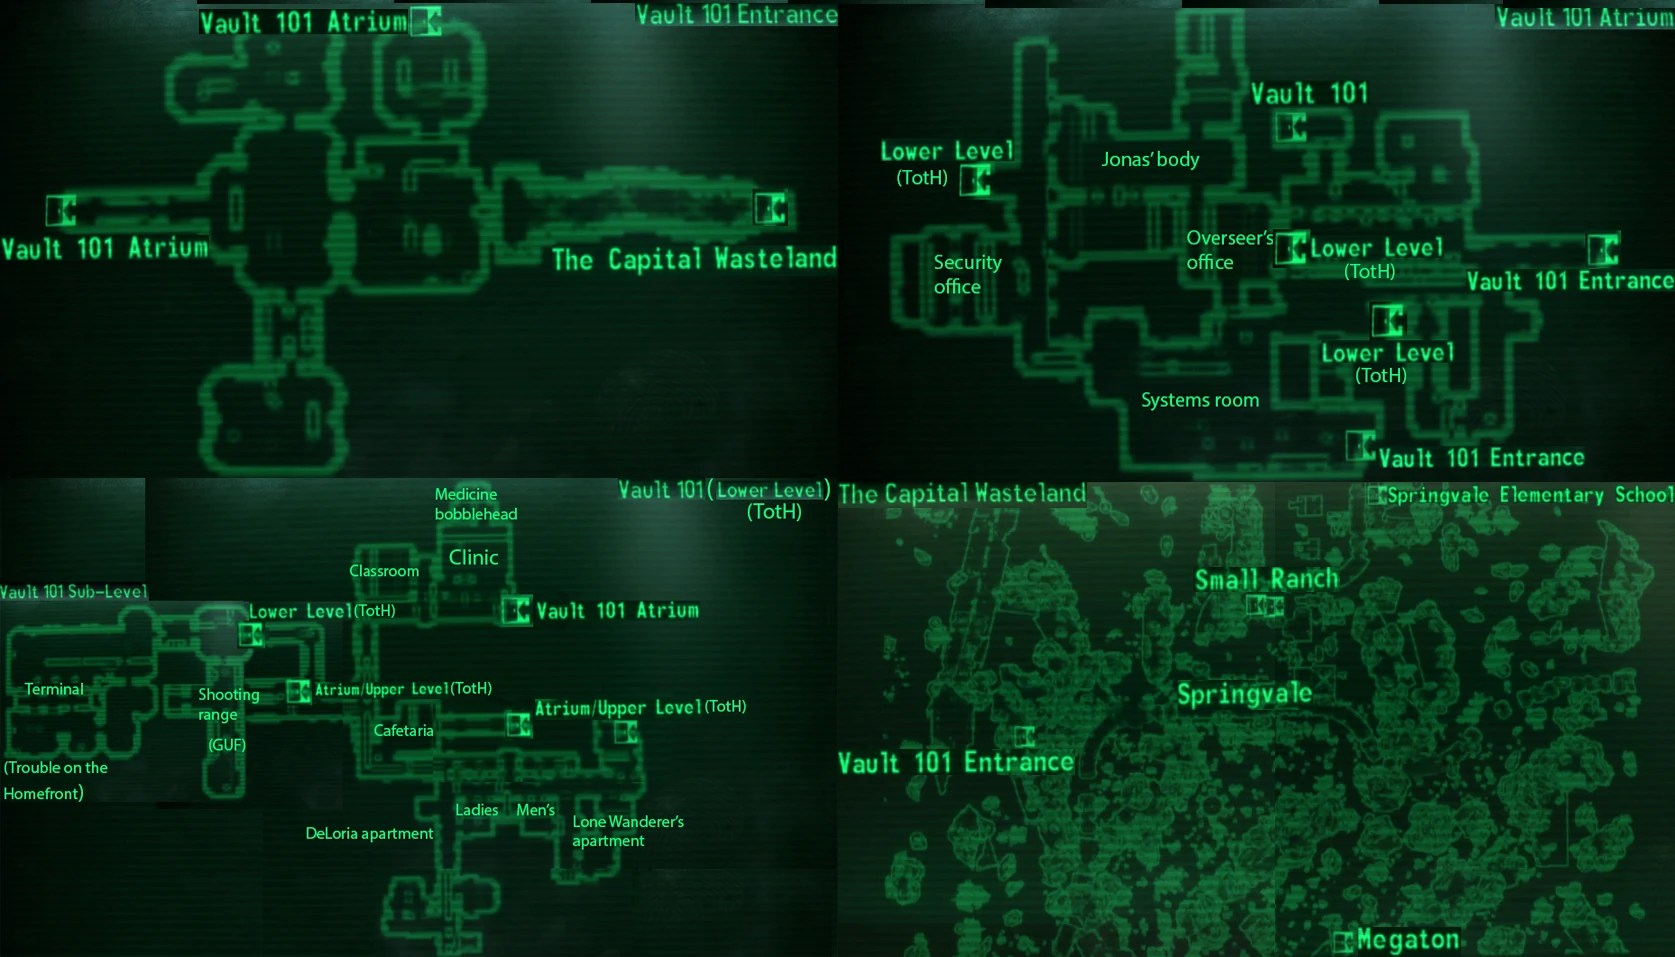 Image Vault 101 Local Mapjpg Fallout Wiki FANDOM Powered By Wikia